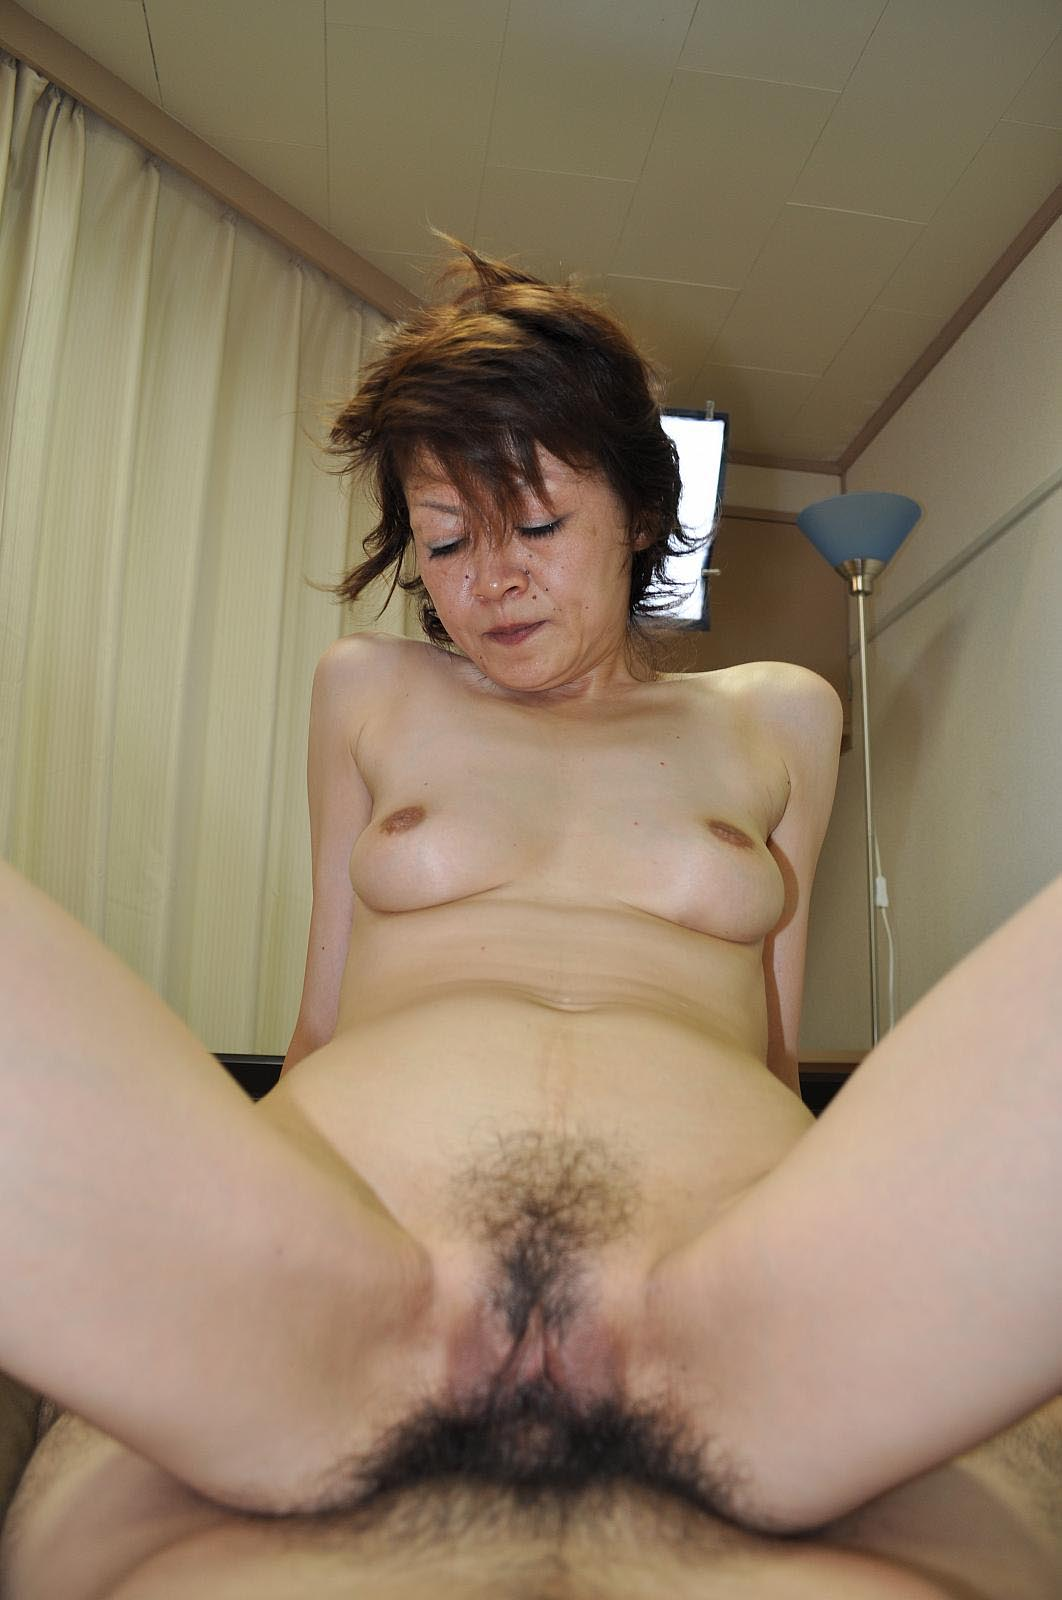 think, that sweet chubby delicious wife fucked hard very grateful you